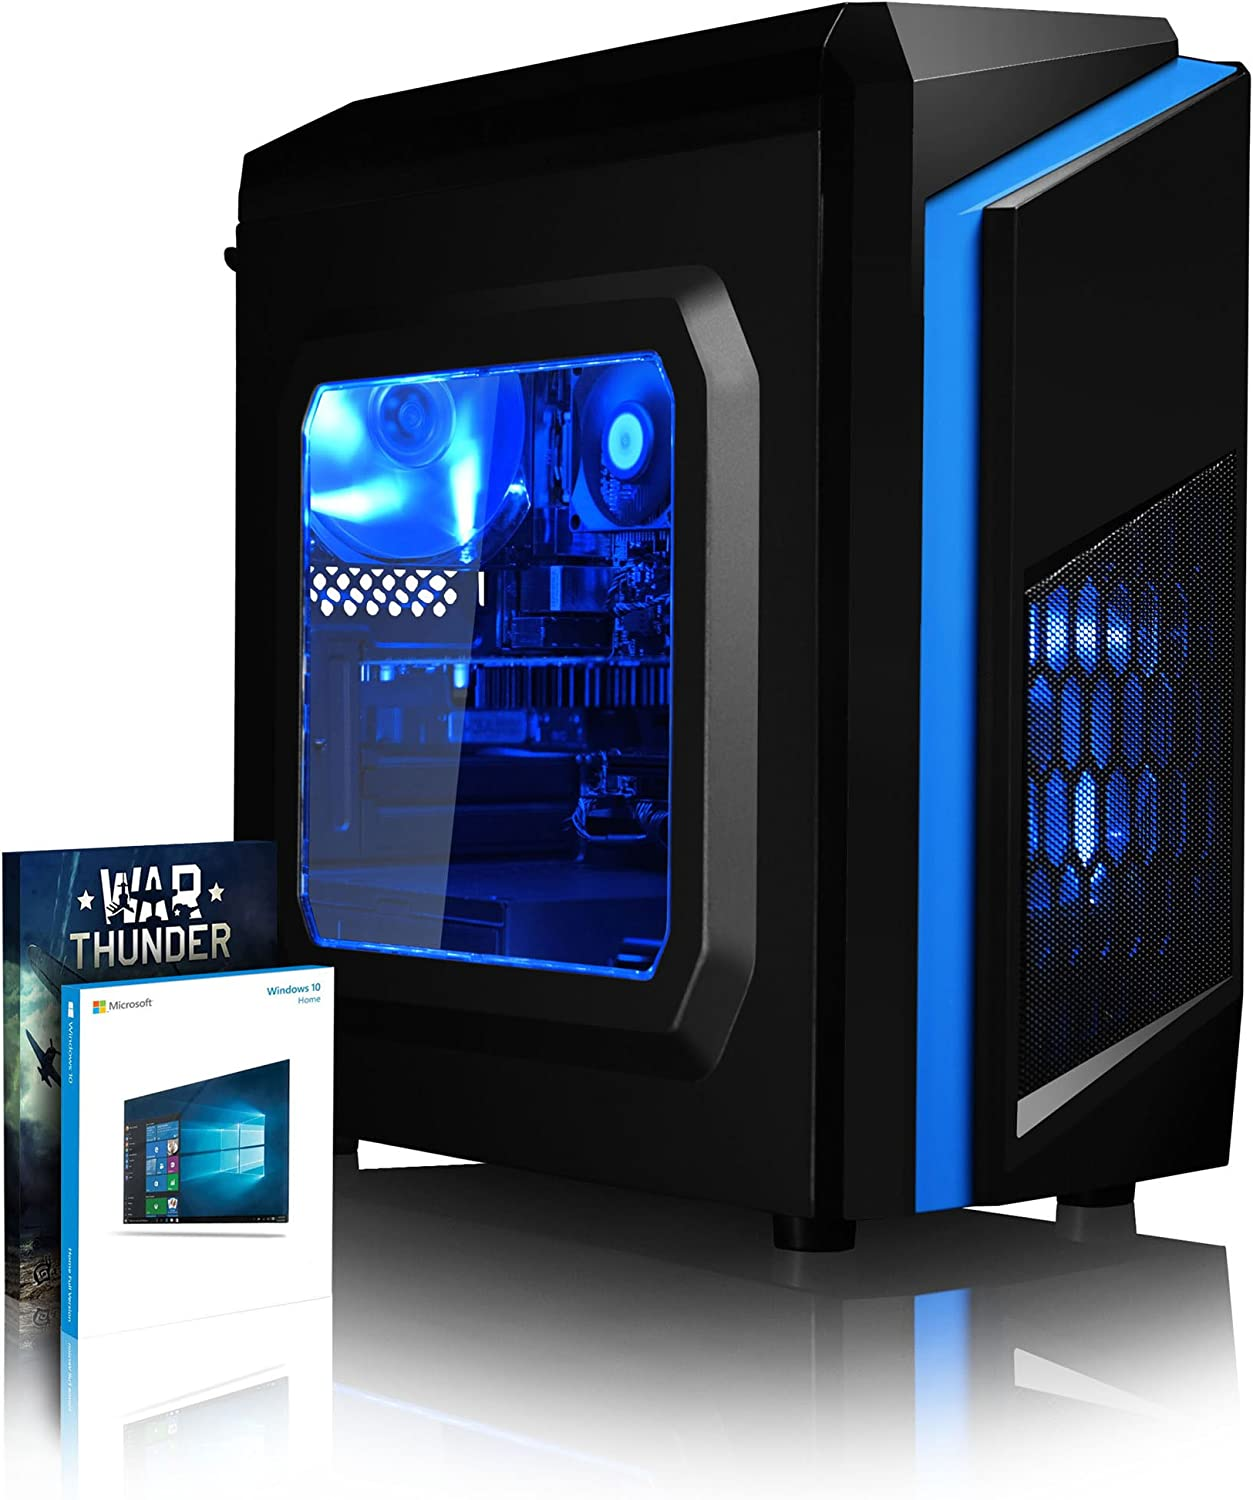 VIBOX Warrior 4XSW Gaming PC Ordenador de sobremesa con War Thunder Cupón de Juego, Windows 10 Pro OS (4,1GHz AMD FX 6-Core Procesador, Nvidia GeForce GTX 1050 Tarjeta Grafica, 16GB RAM, 2TB